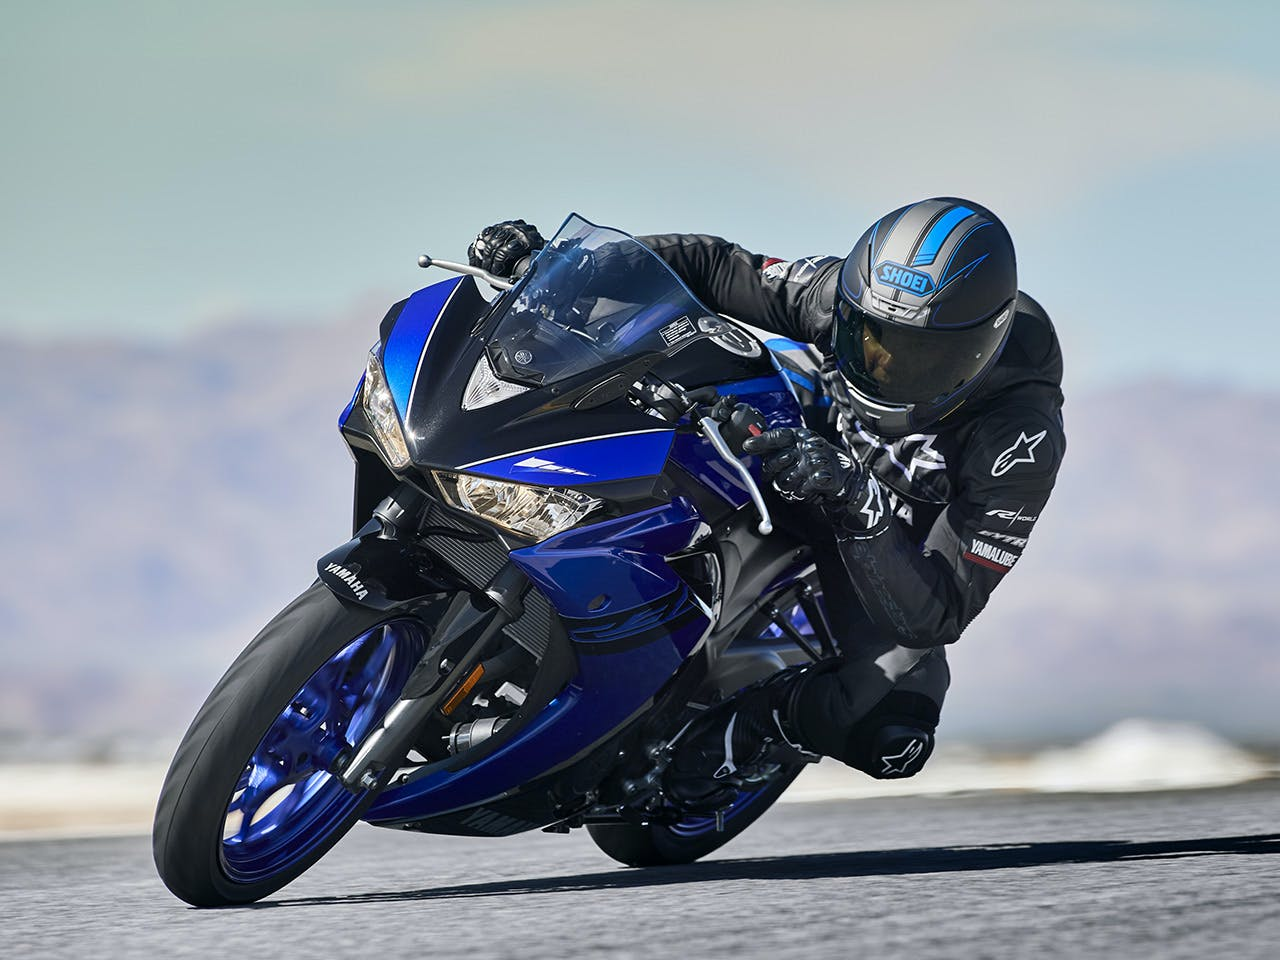 Yamaha YZF-R3 2018 being ridden on a hill road